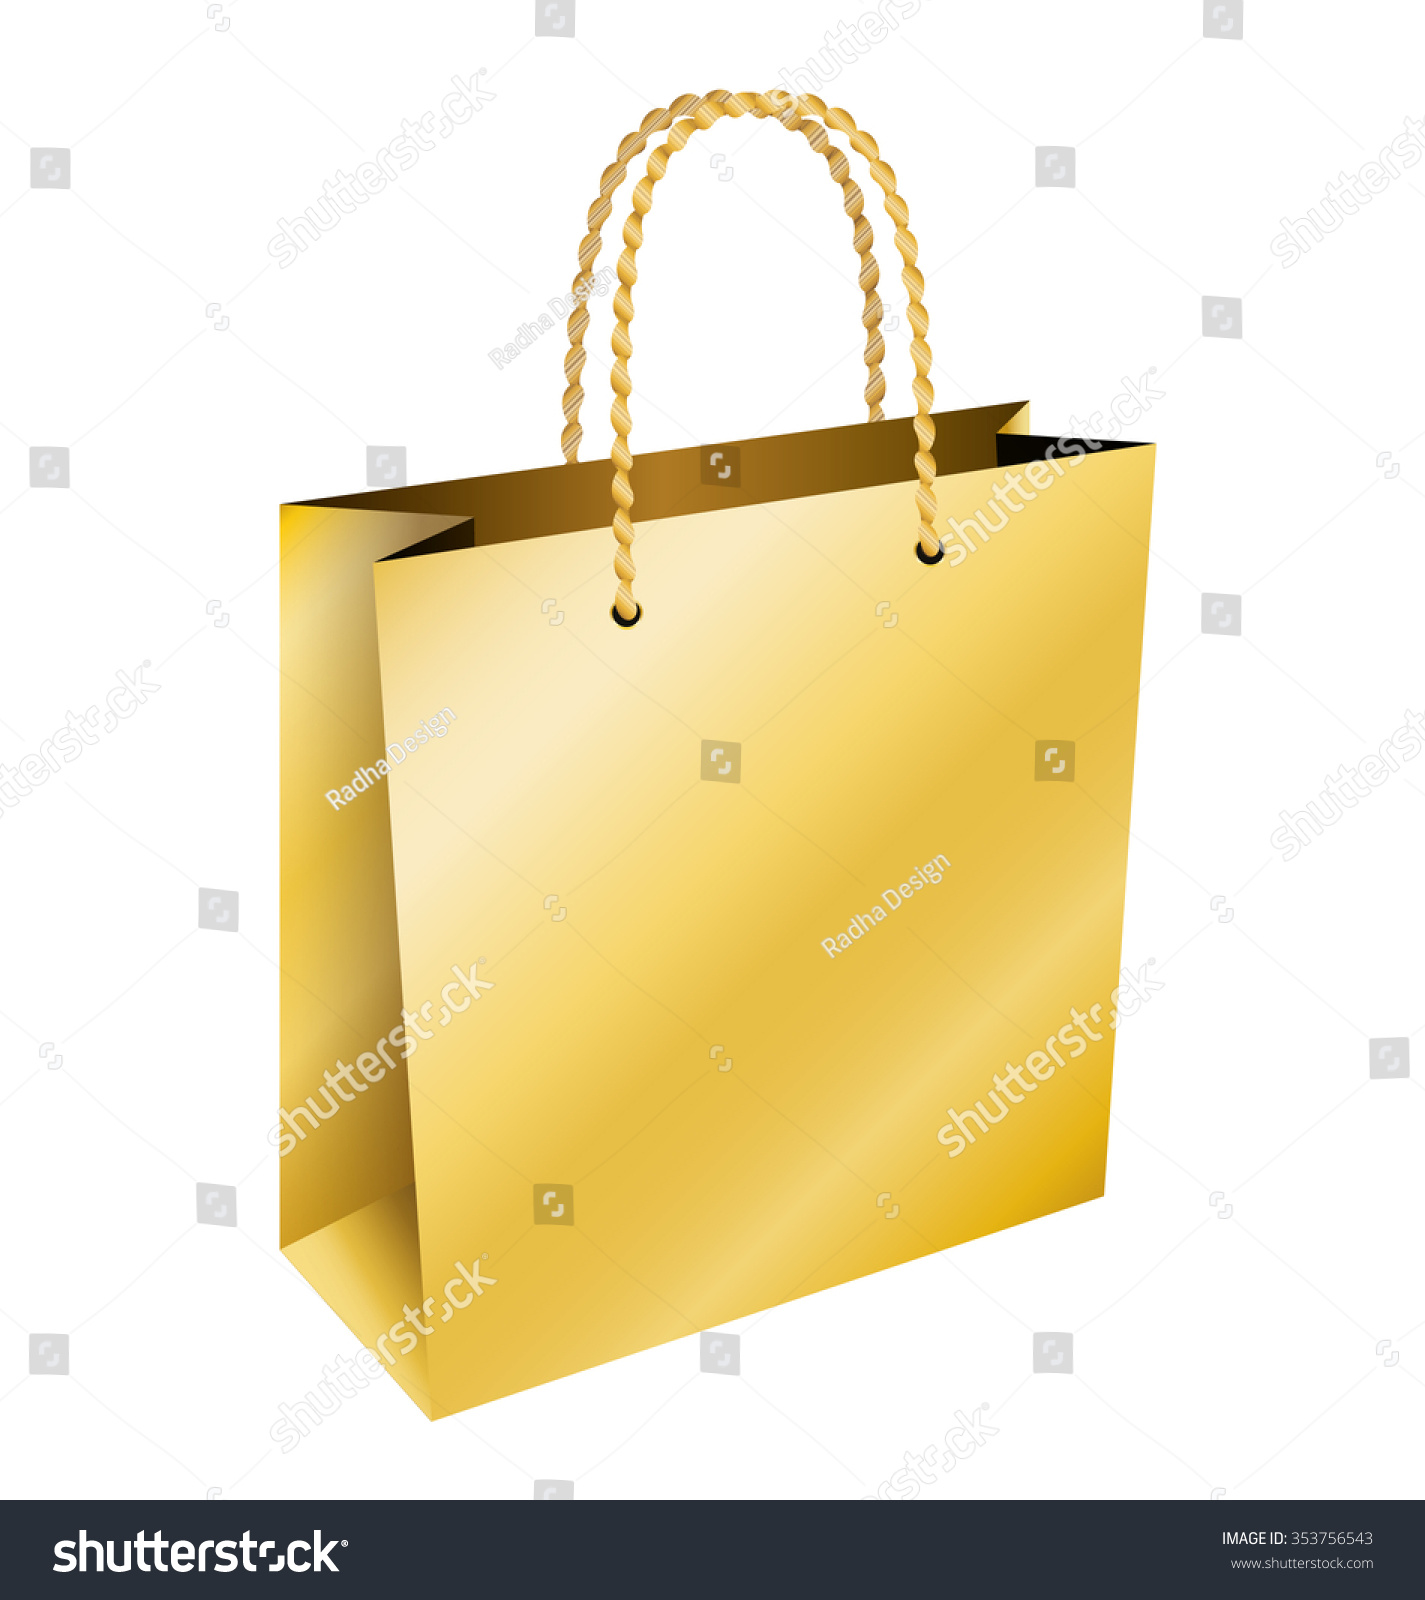 Paper bag yellow - Golden Paper Bag Christmas Gift Isolated Vector Design